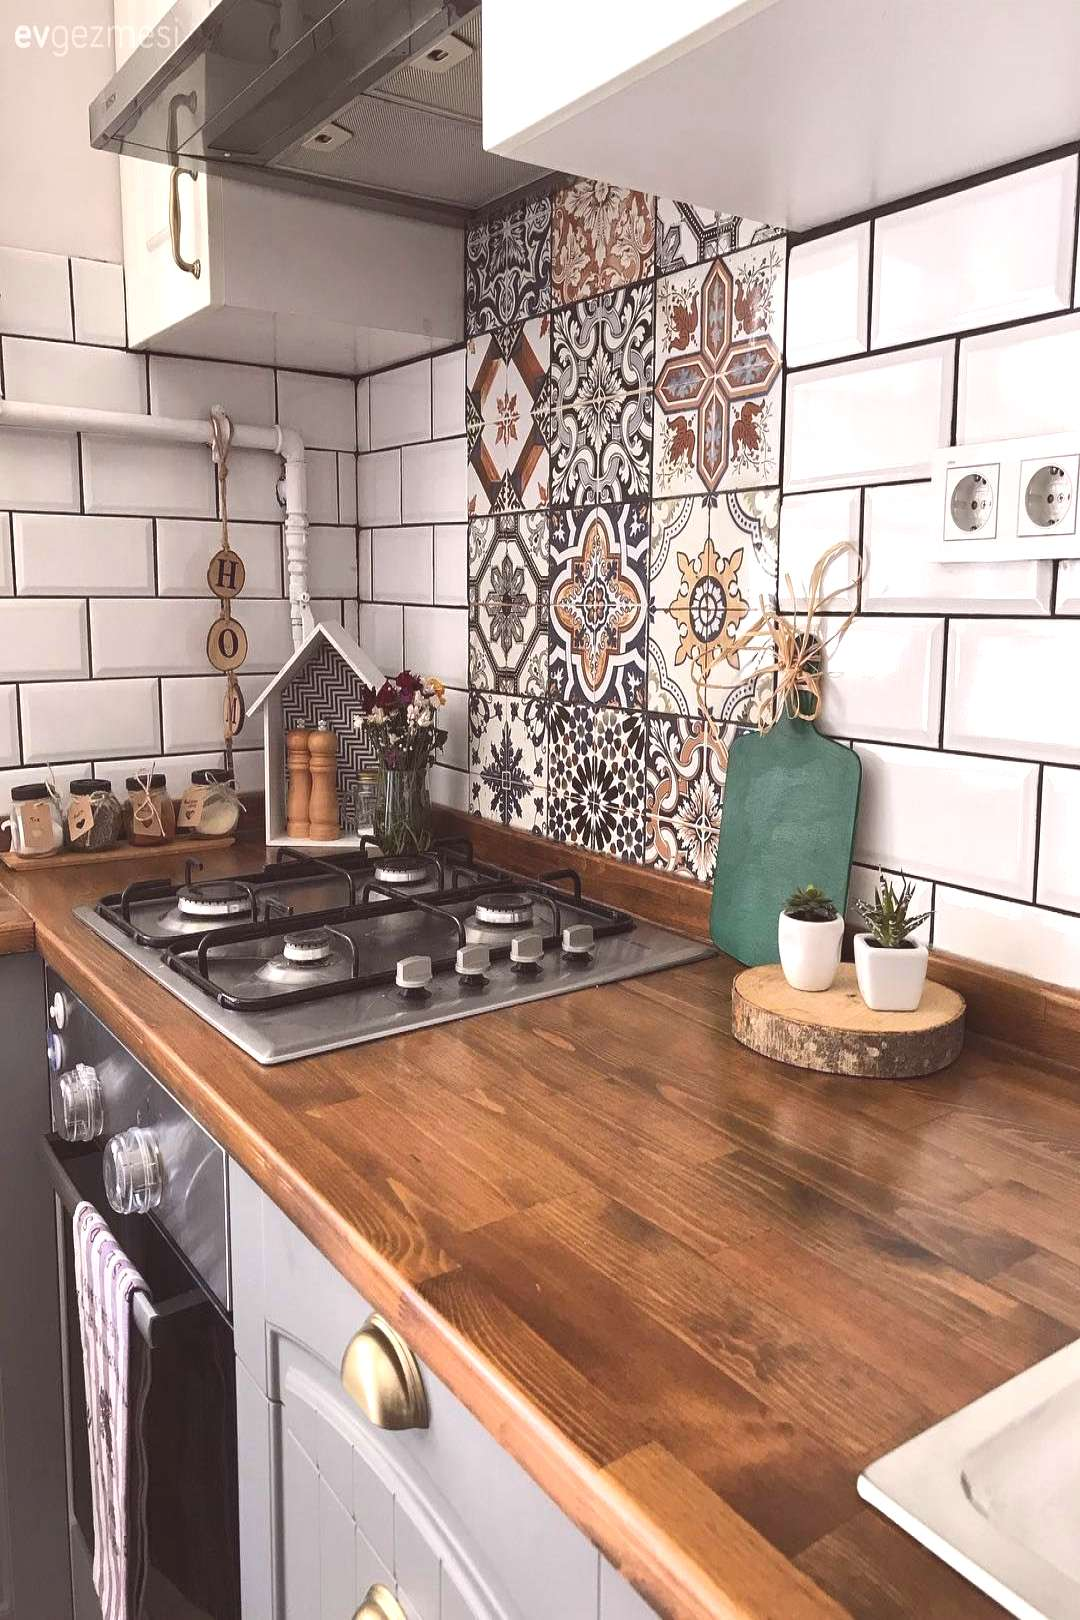 Wooden bench in gray and white cabinets. Rustic cuisine of the lady. | House Trip - Built-in, Tile